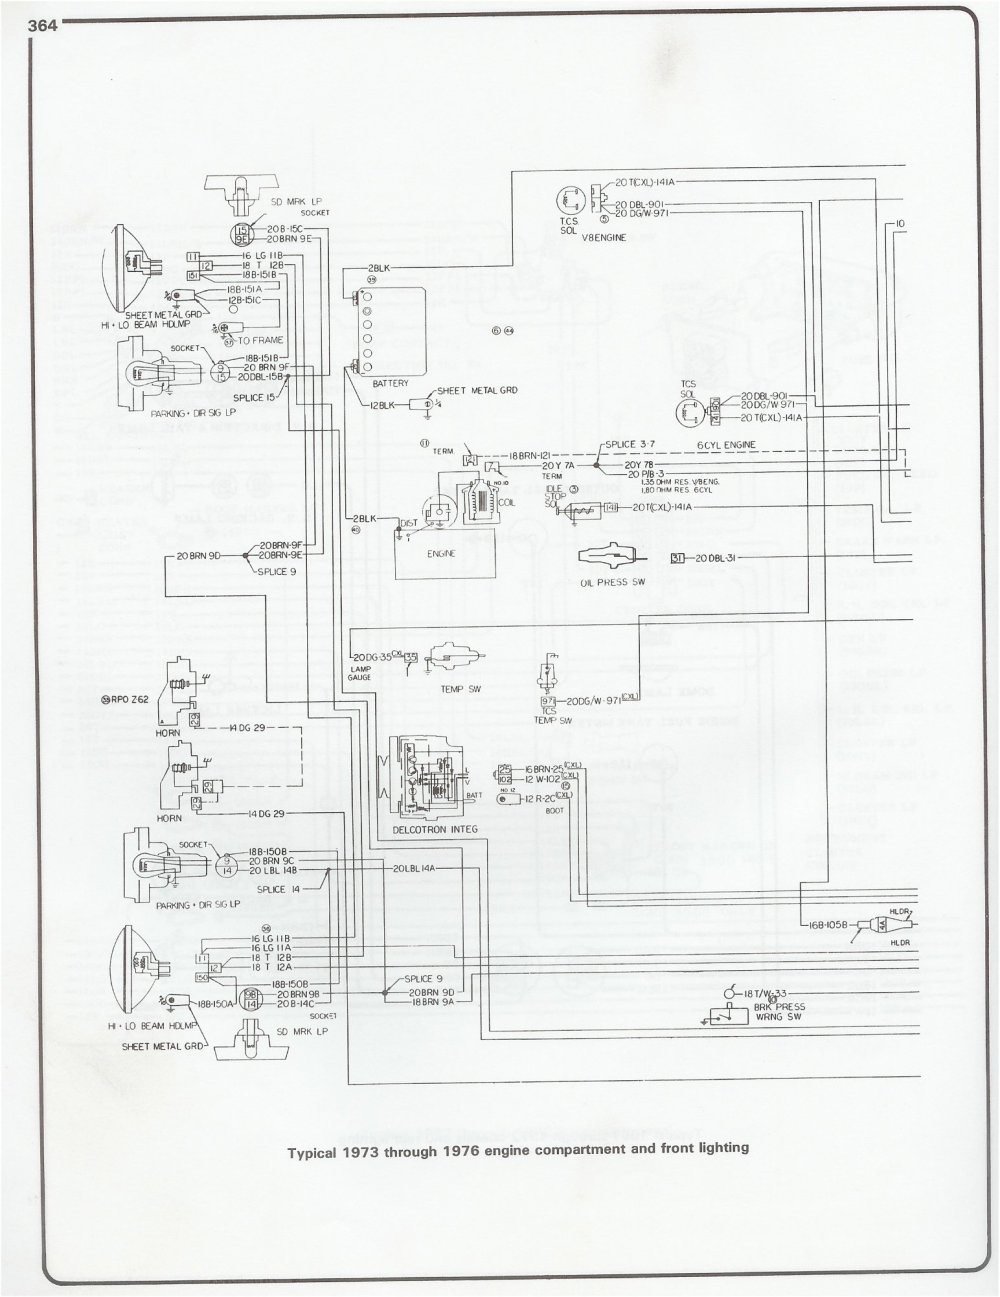 medium resolution of  diagram source 79 chevy truck complete 73 87 wiring diagrams73 76 engine and front lighting